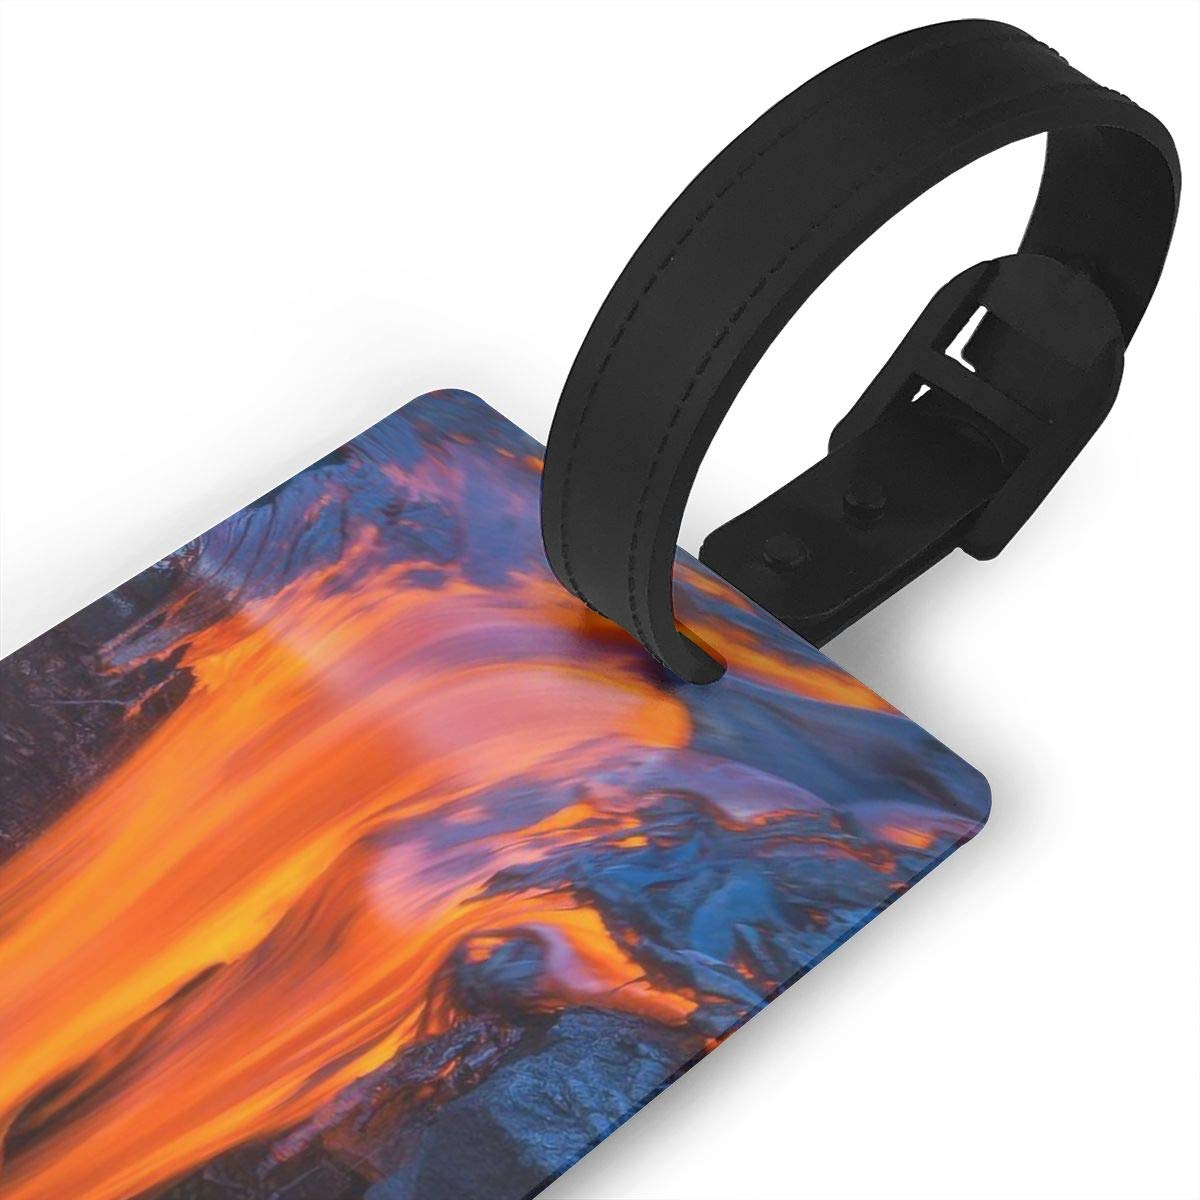 Volcano Erupting Handbag Tag For Travel Bag Suitcase Accessories 2 Pack Luggage Tags